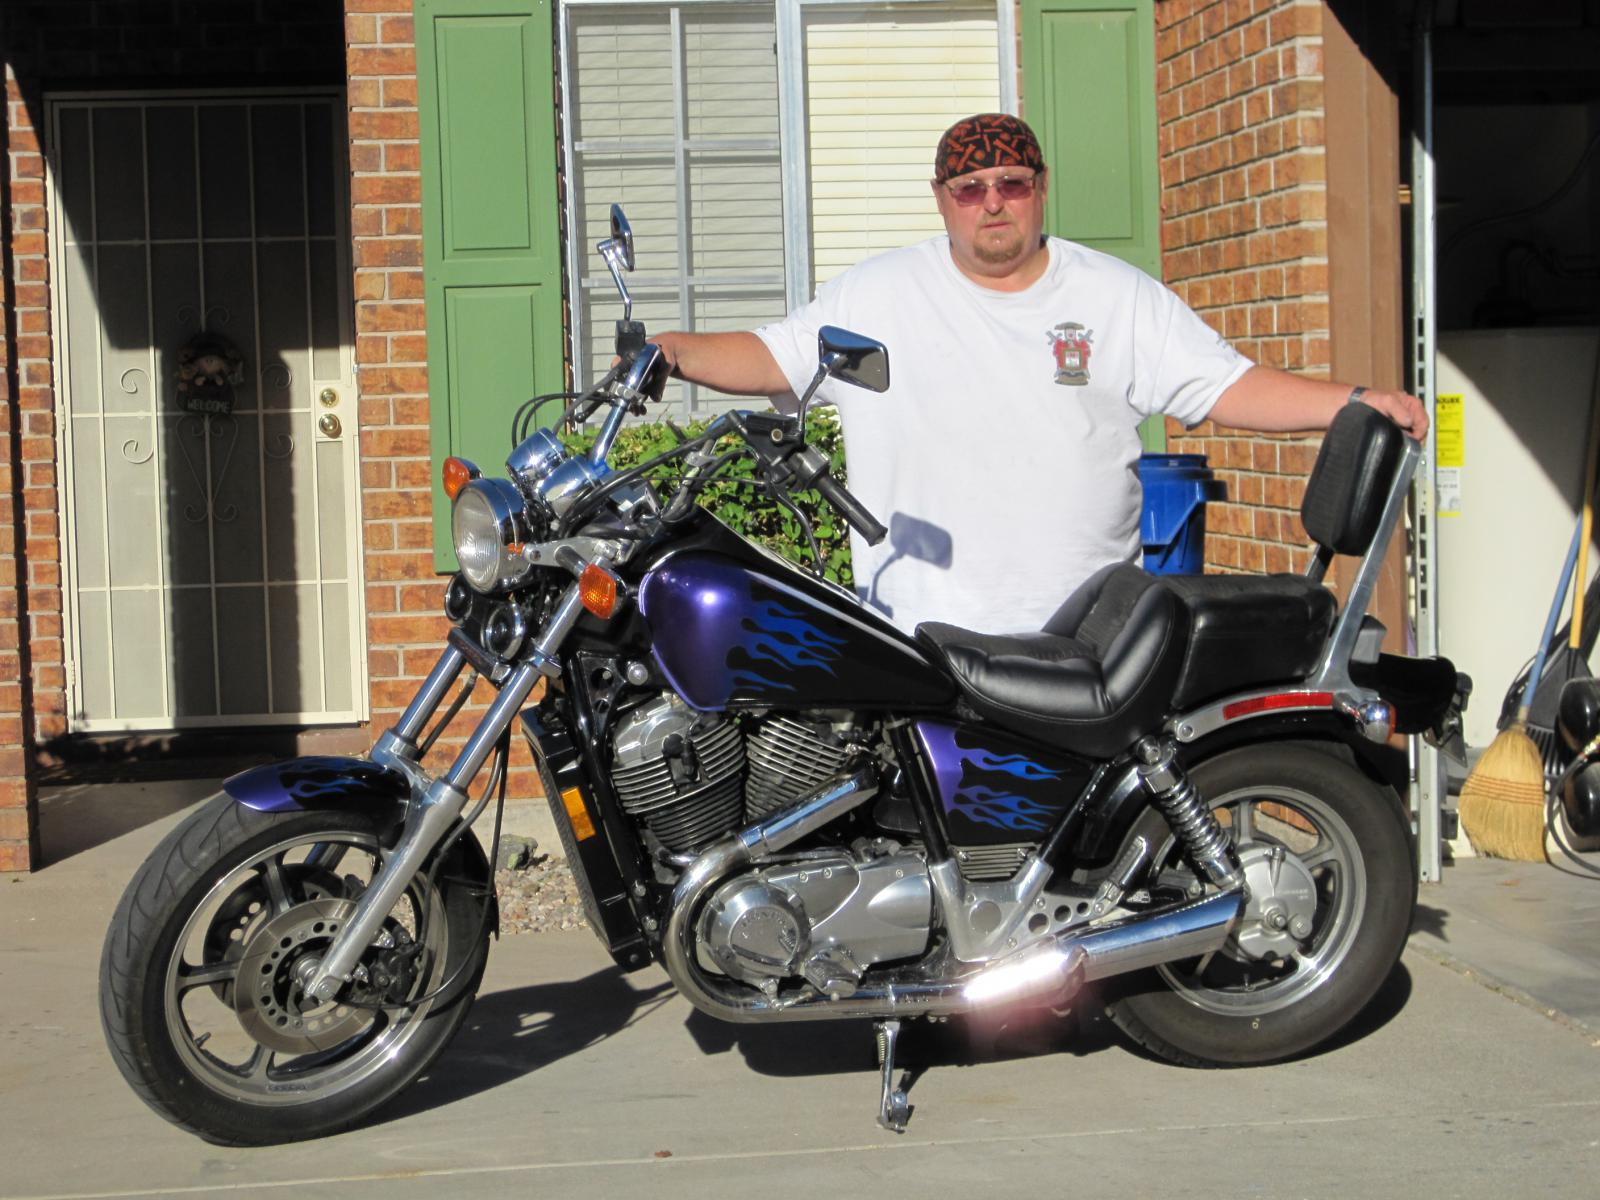 85 vt1100 clutch wont engage honda shadow forums shadow report this image publicscrutiny Images